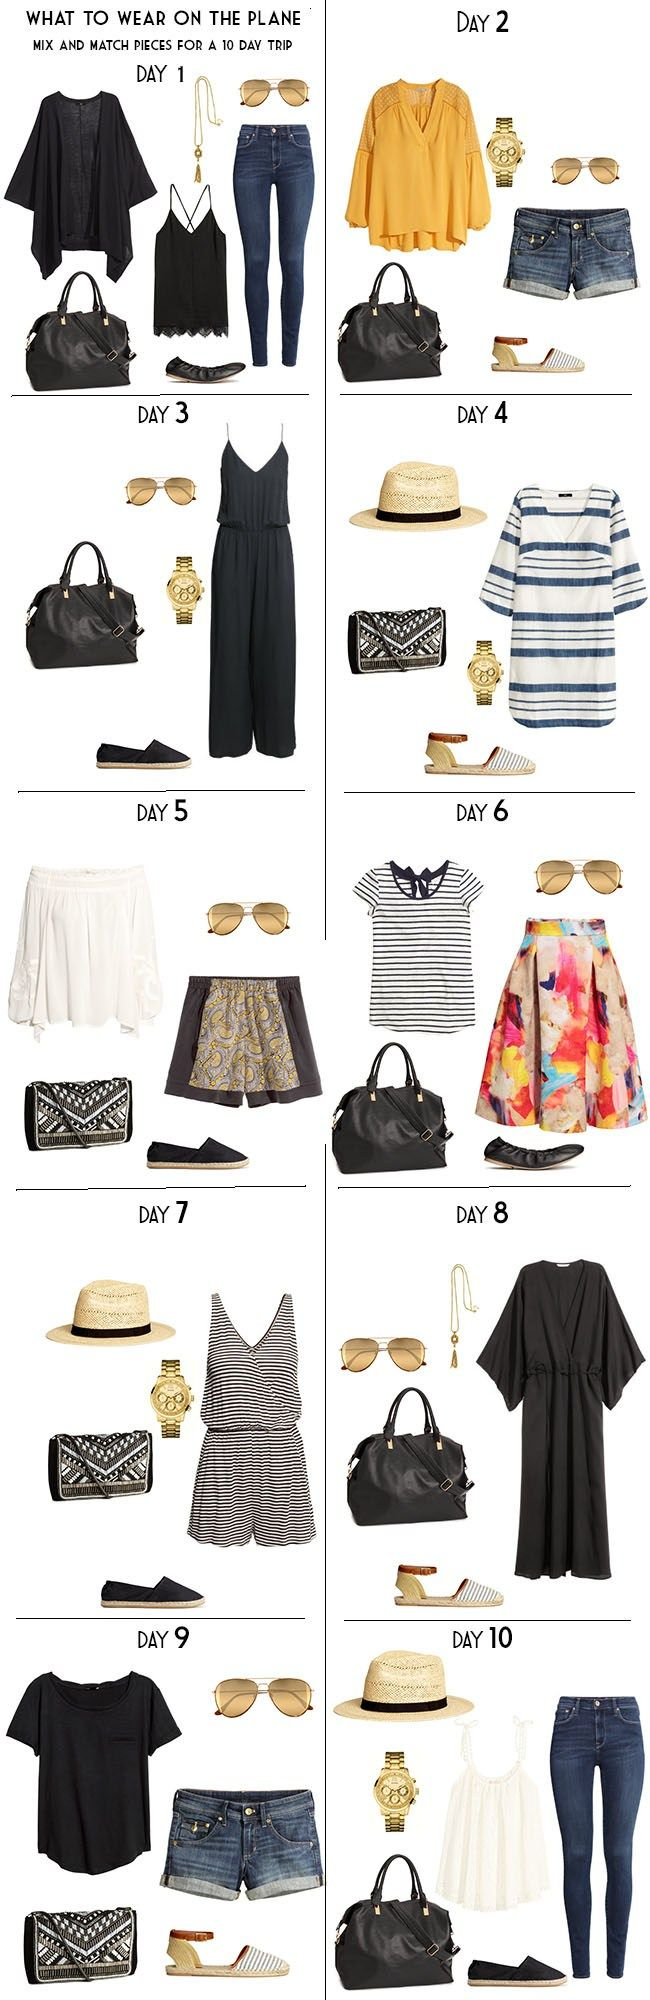 Packing for a summer vacation, including airport outfits/what to wear on the plane.